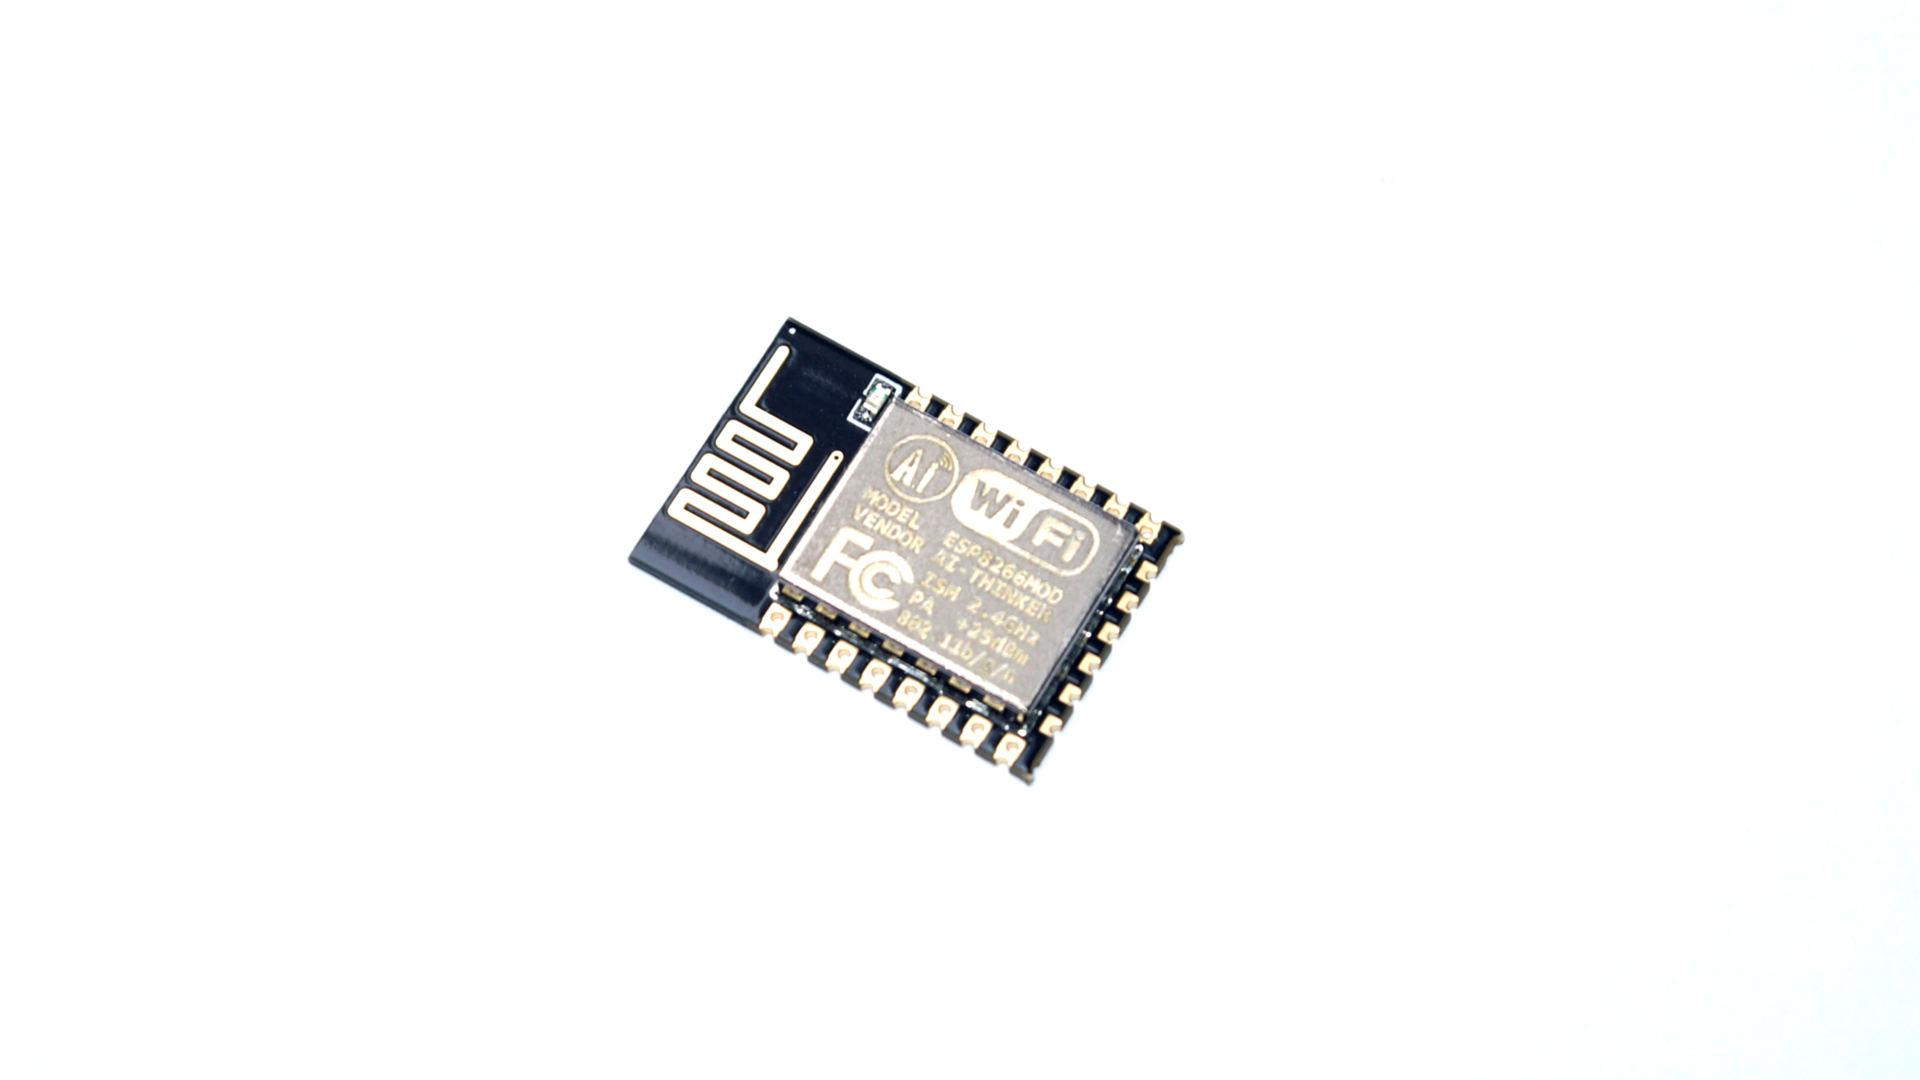 Nettigo: ESP-8266-12 WiFi module with 9 GPIO